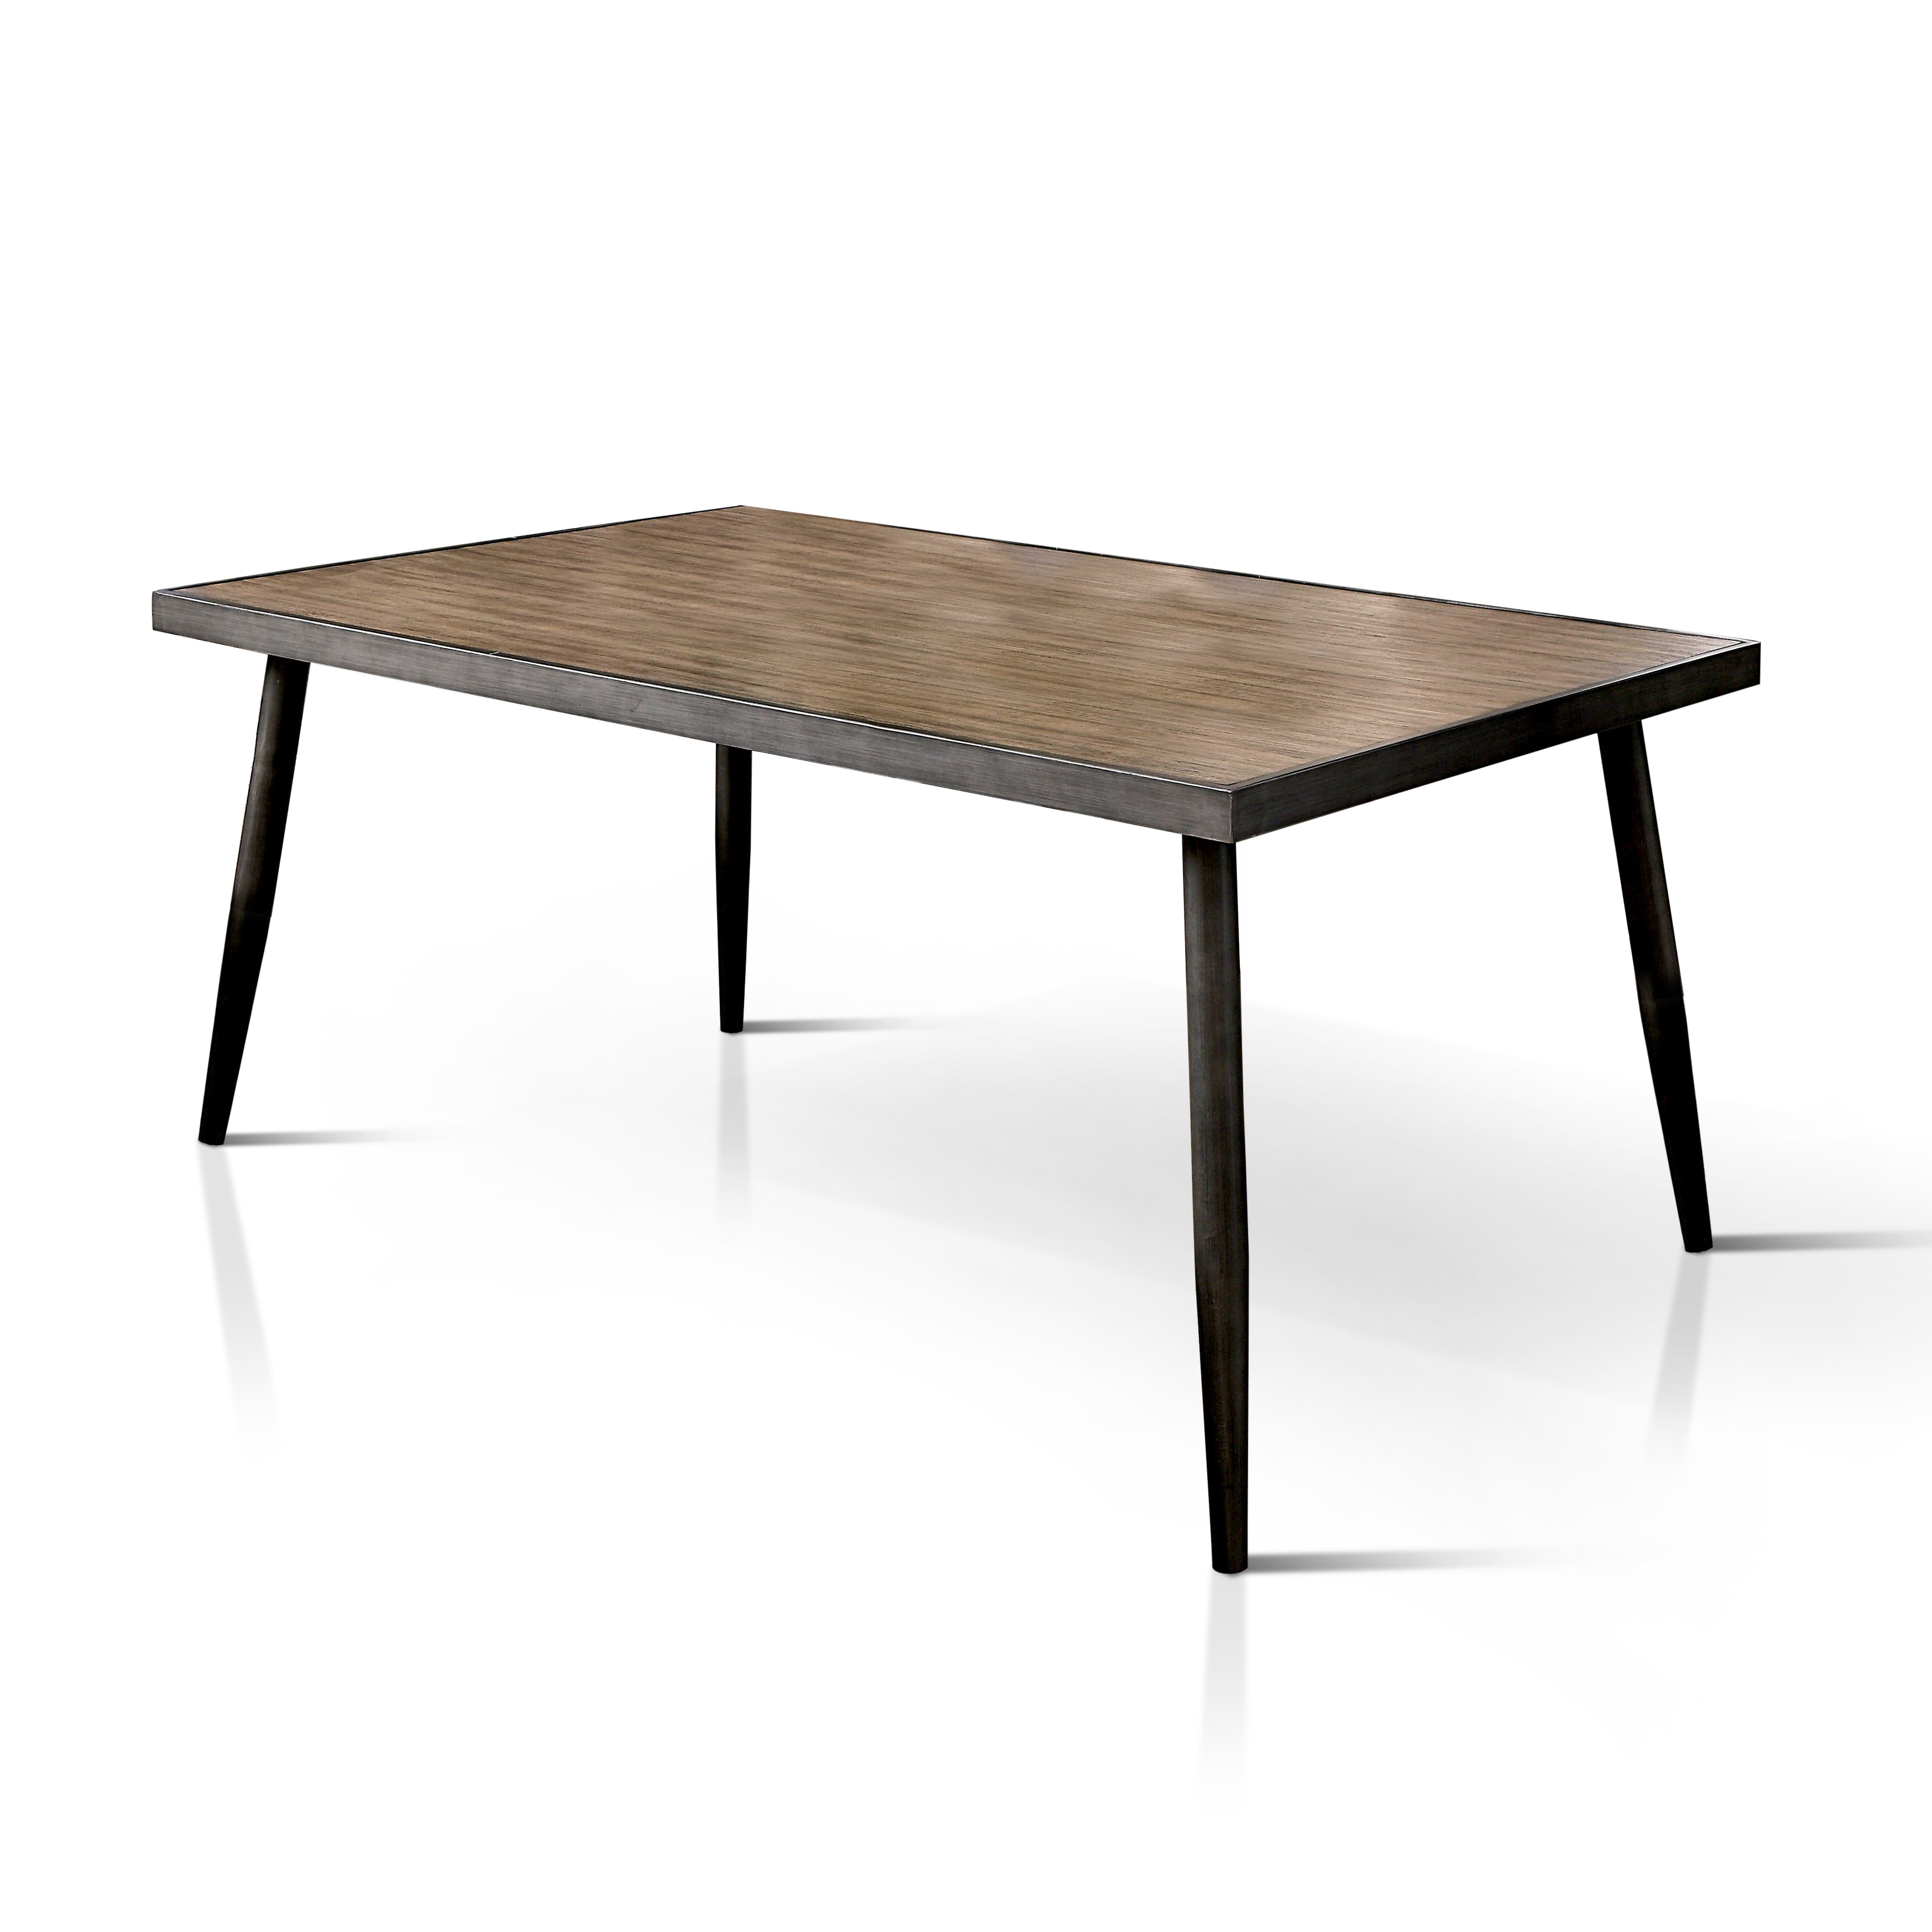 mid century industrial furniture. Furniture Of America Bradensbrook Mid-Century Modern Industrial Style Metal 64-inch Dining Table - Free Shipping Today Overstock 19731207 Mid Century I